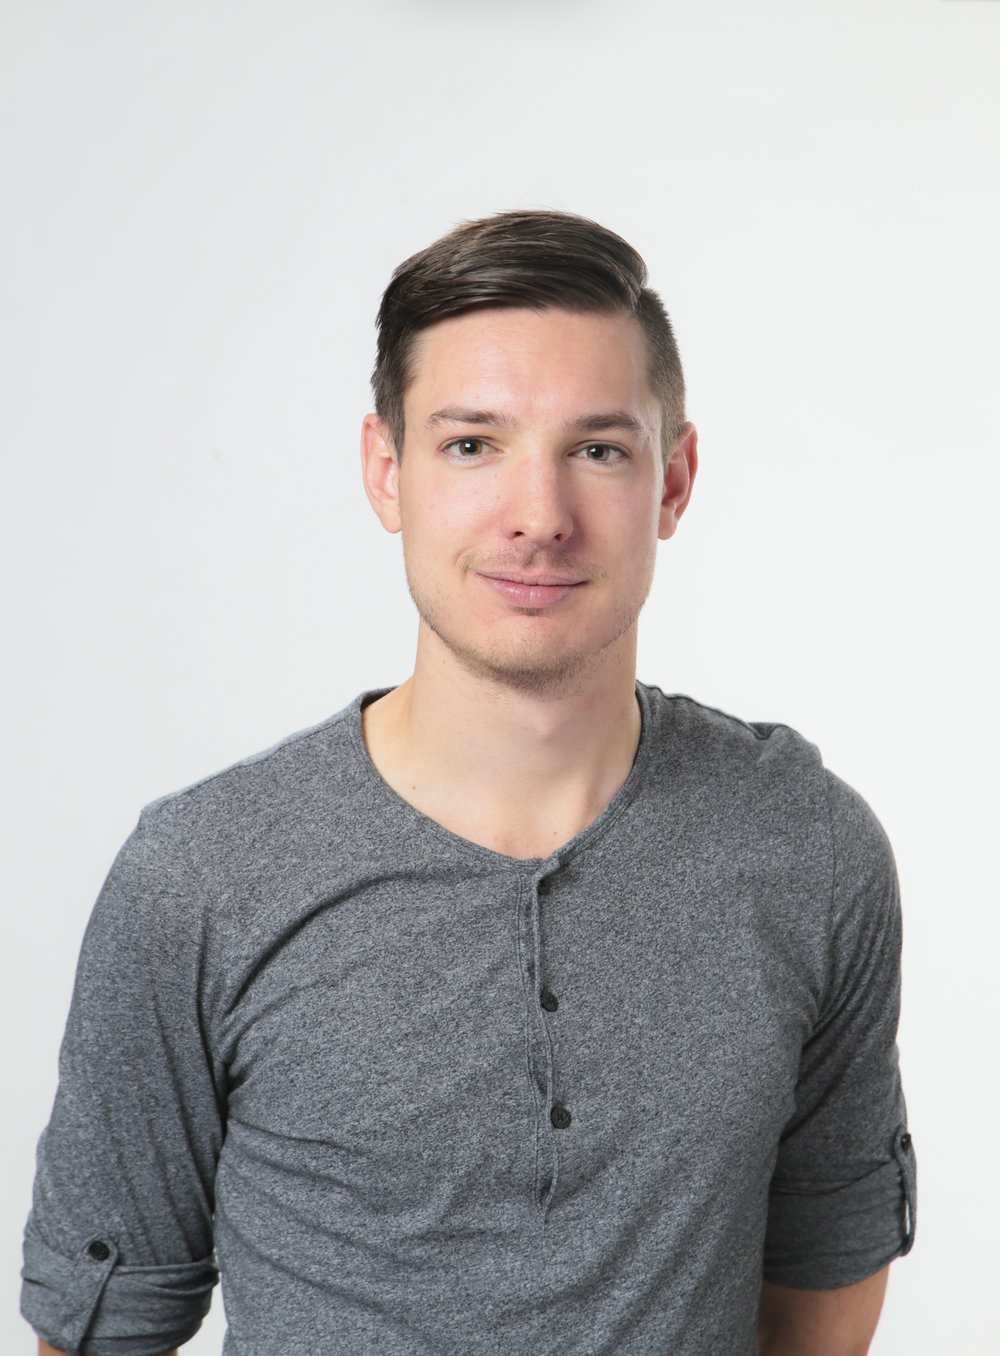 Hi, i'm Keith - I have been producing films since 2013 and have been working in the industry for over 10 years. I pride myself on professionalism, dependability, and creativity.When I am not chasing down the next story, I'm chasing my personal running record. I'm an avid runner with more than a dozen marathons and half-marathons in the books. I also moonlight as an astrophotographer (pun intended).Feel free to reach out to me!